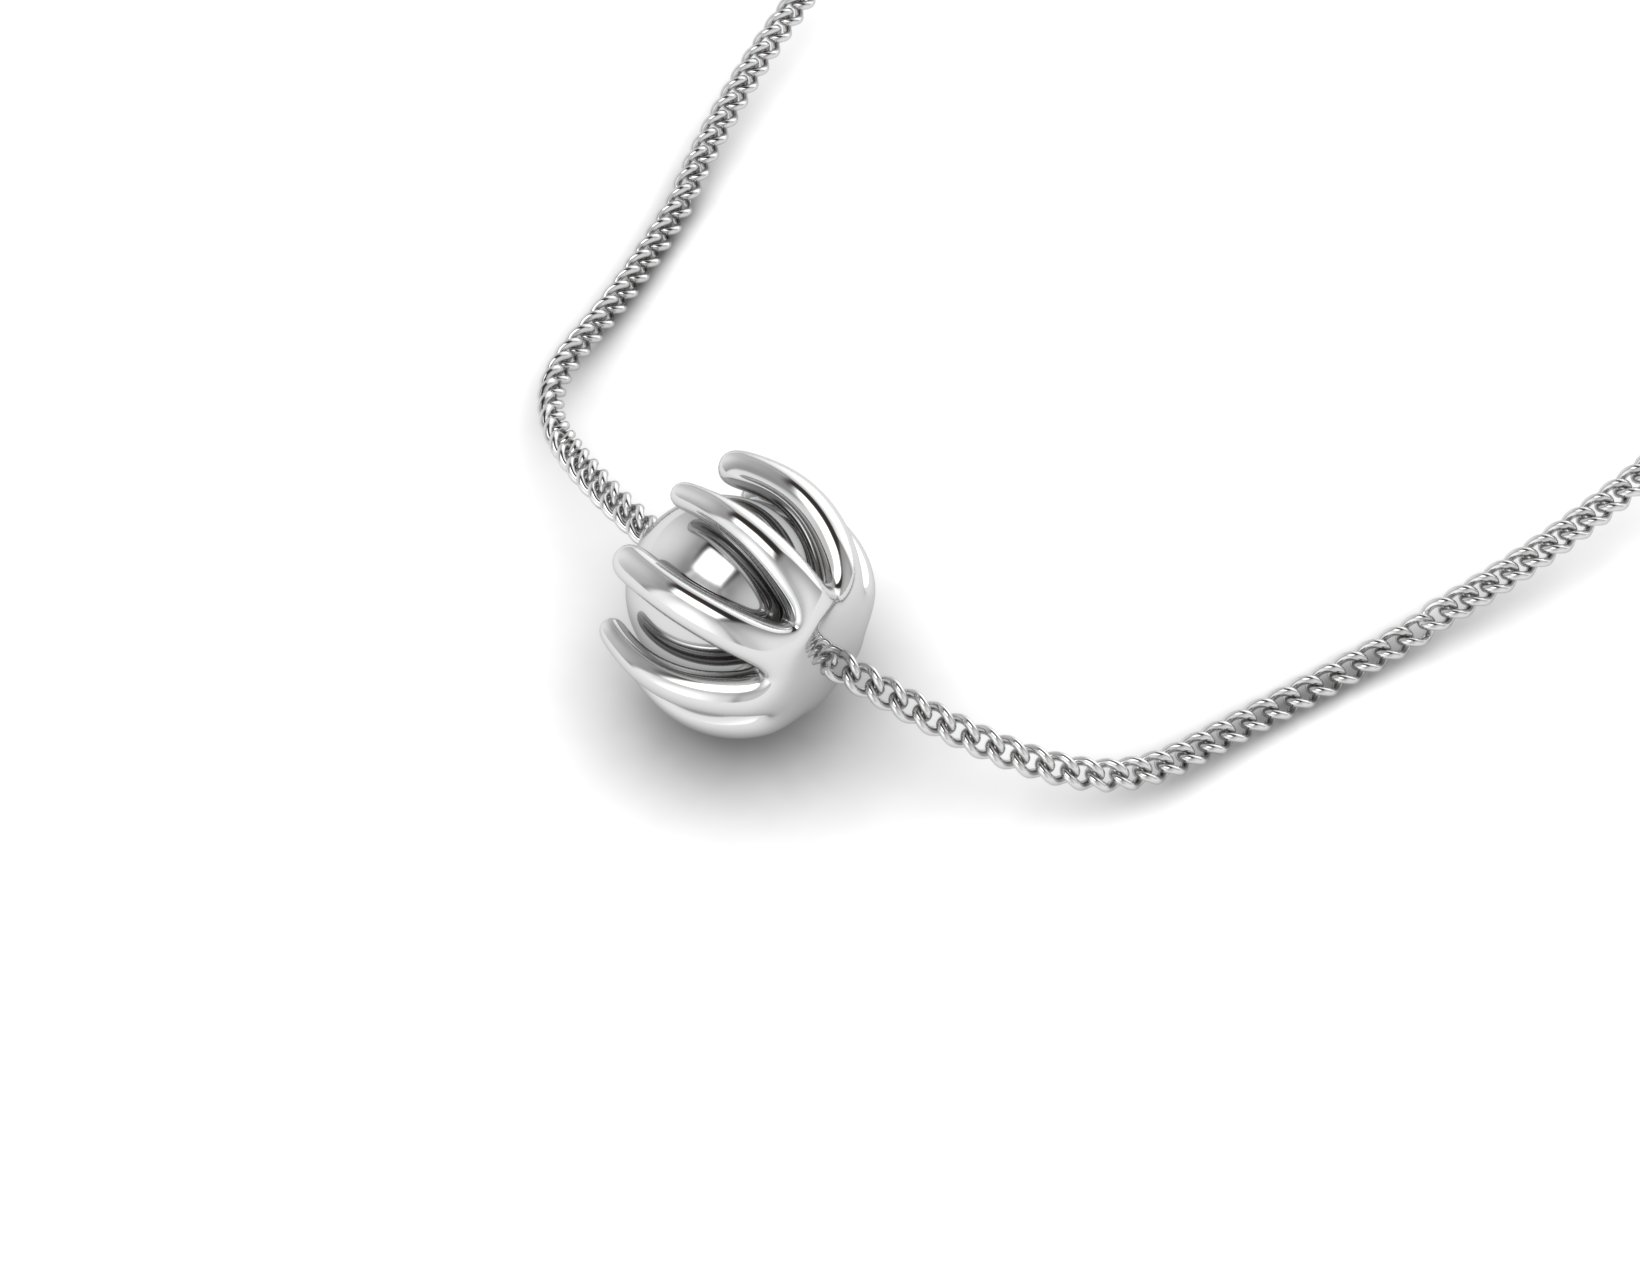 ball&socket pendant with chain perspective.jpg